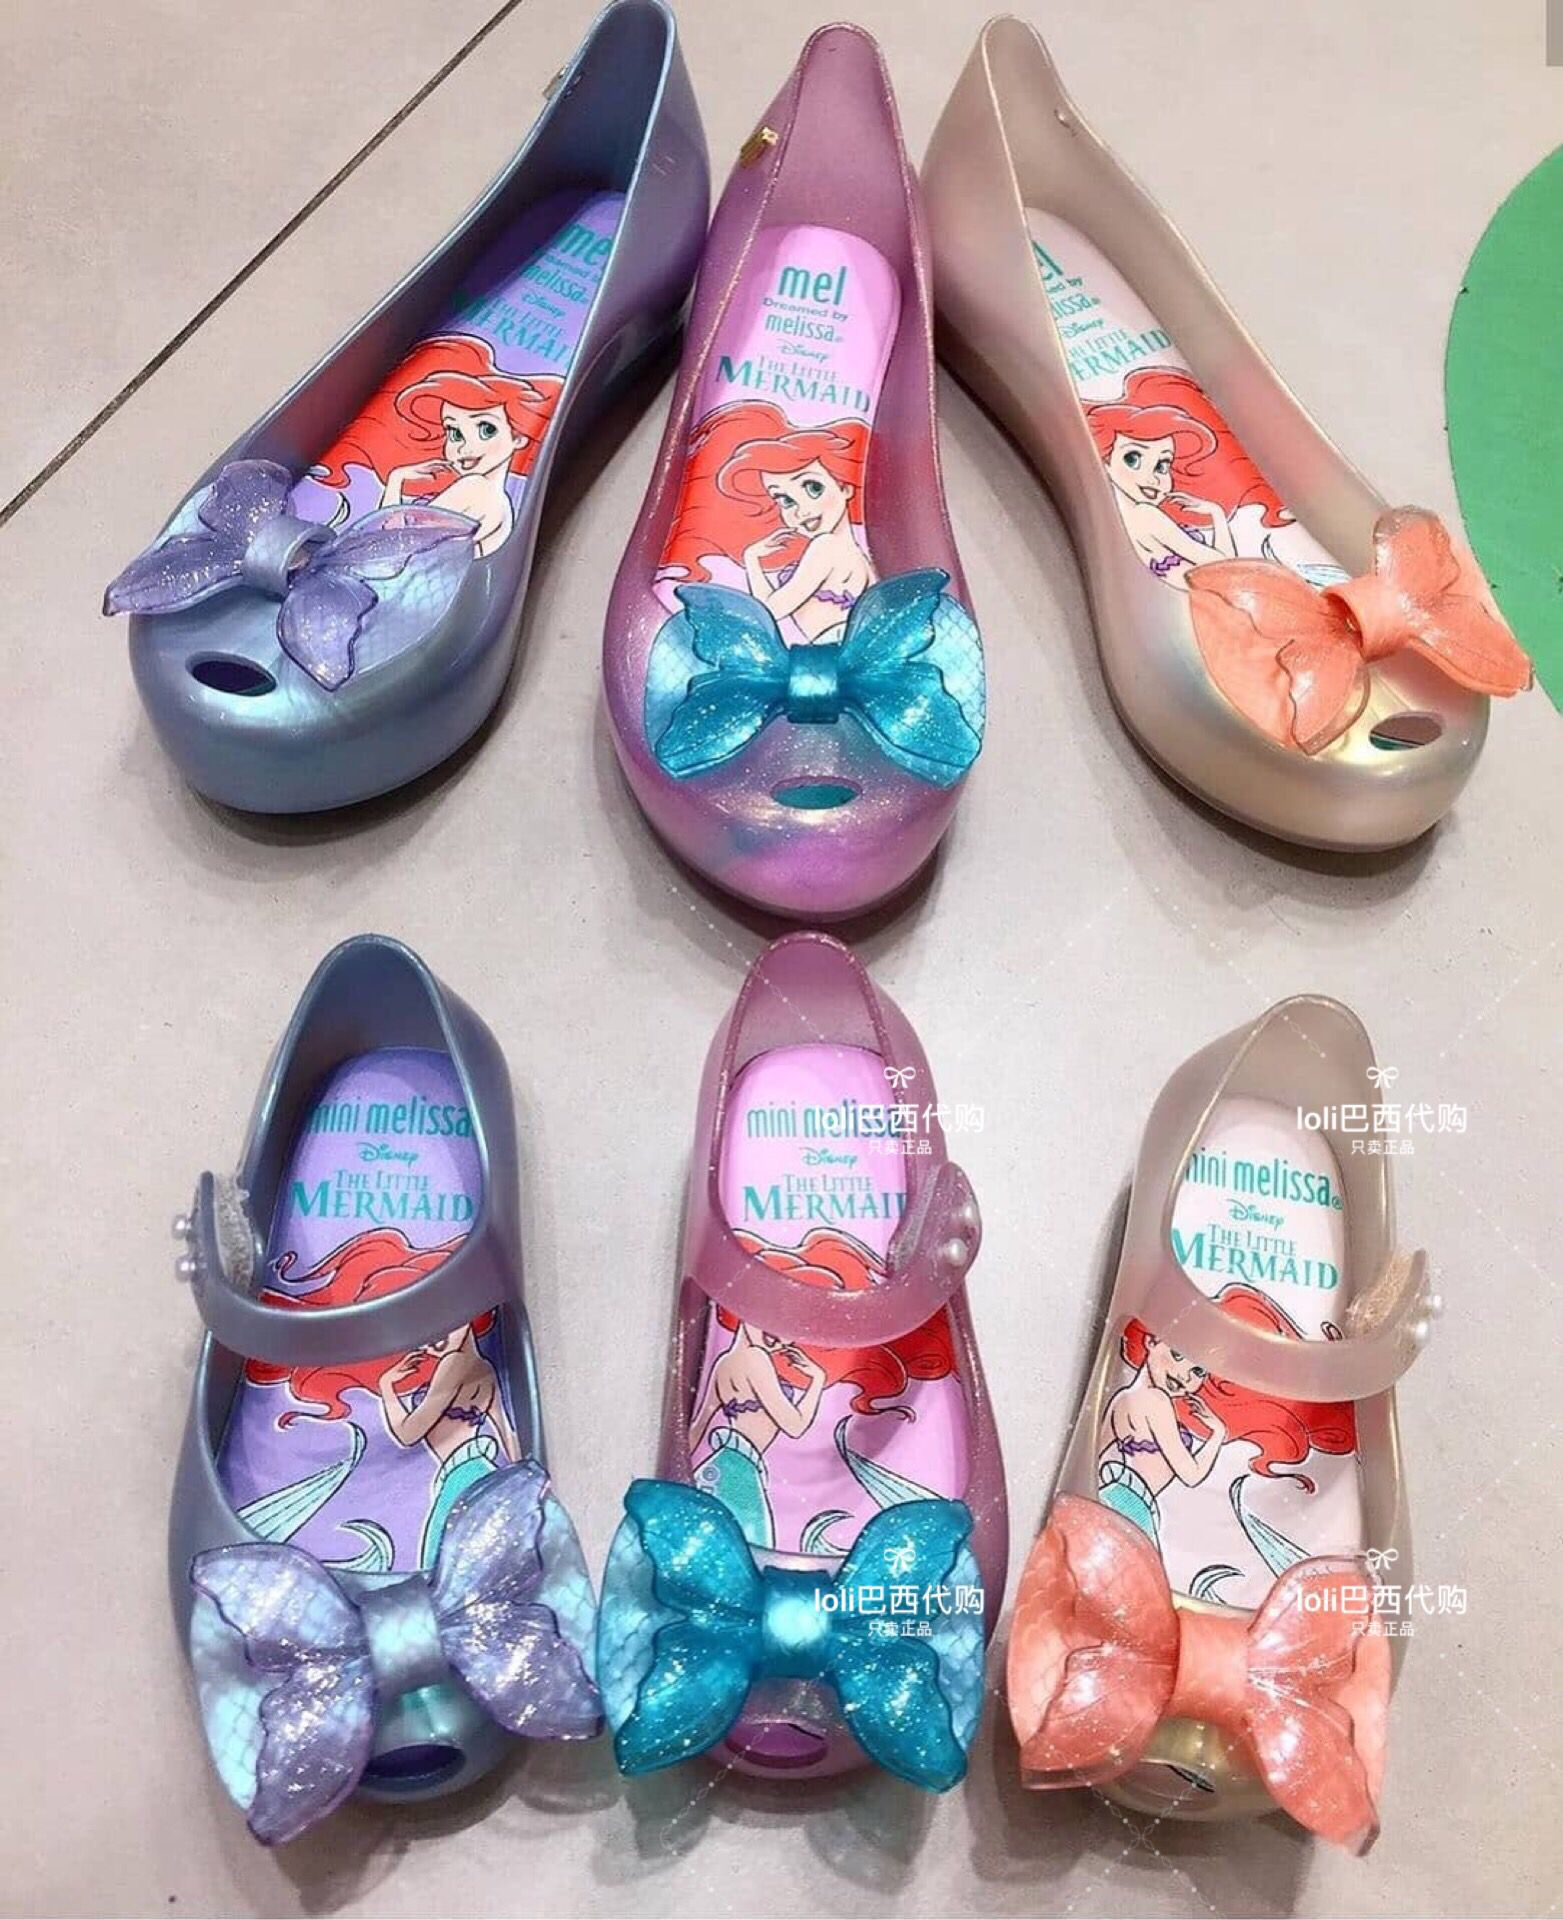 BIG Girls 2020 New Mini Melissa Mermaid Jelly Shoes Kids Beach Sandals Children Princess Candy Non-slip Melissa Sandals SH19115